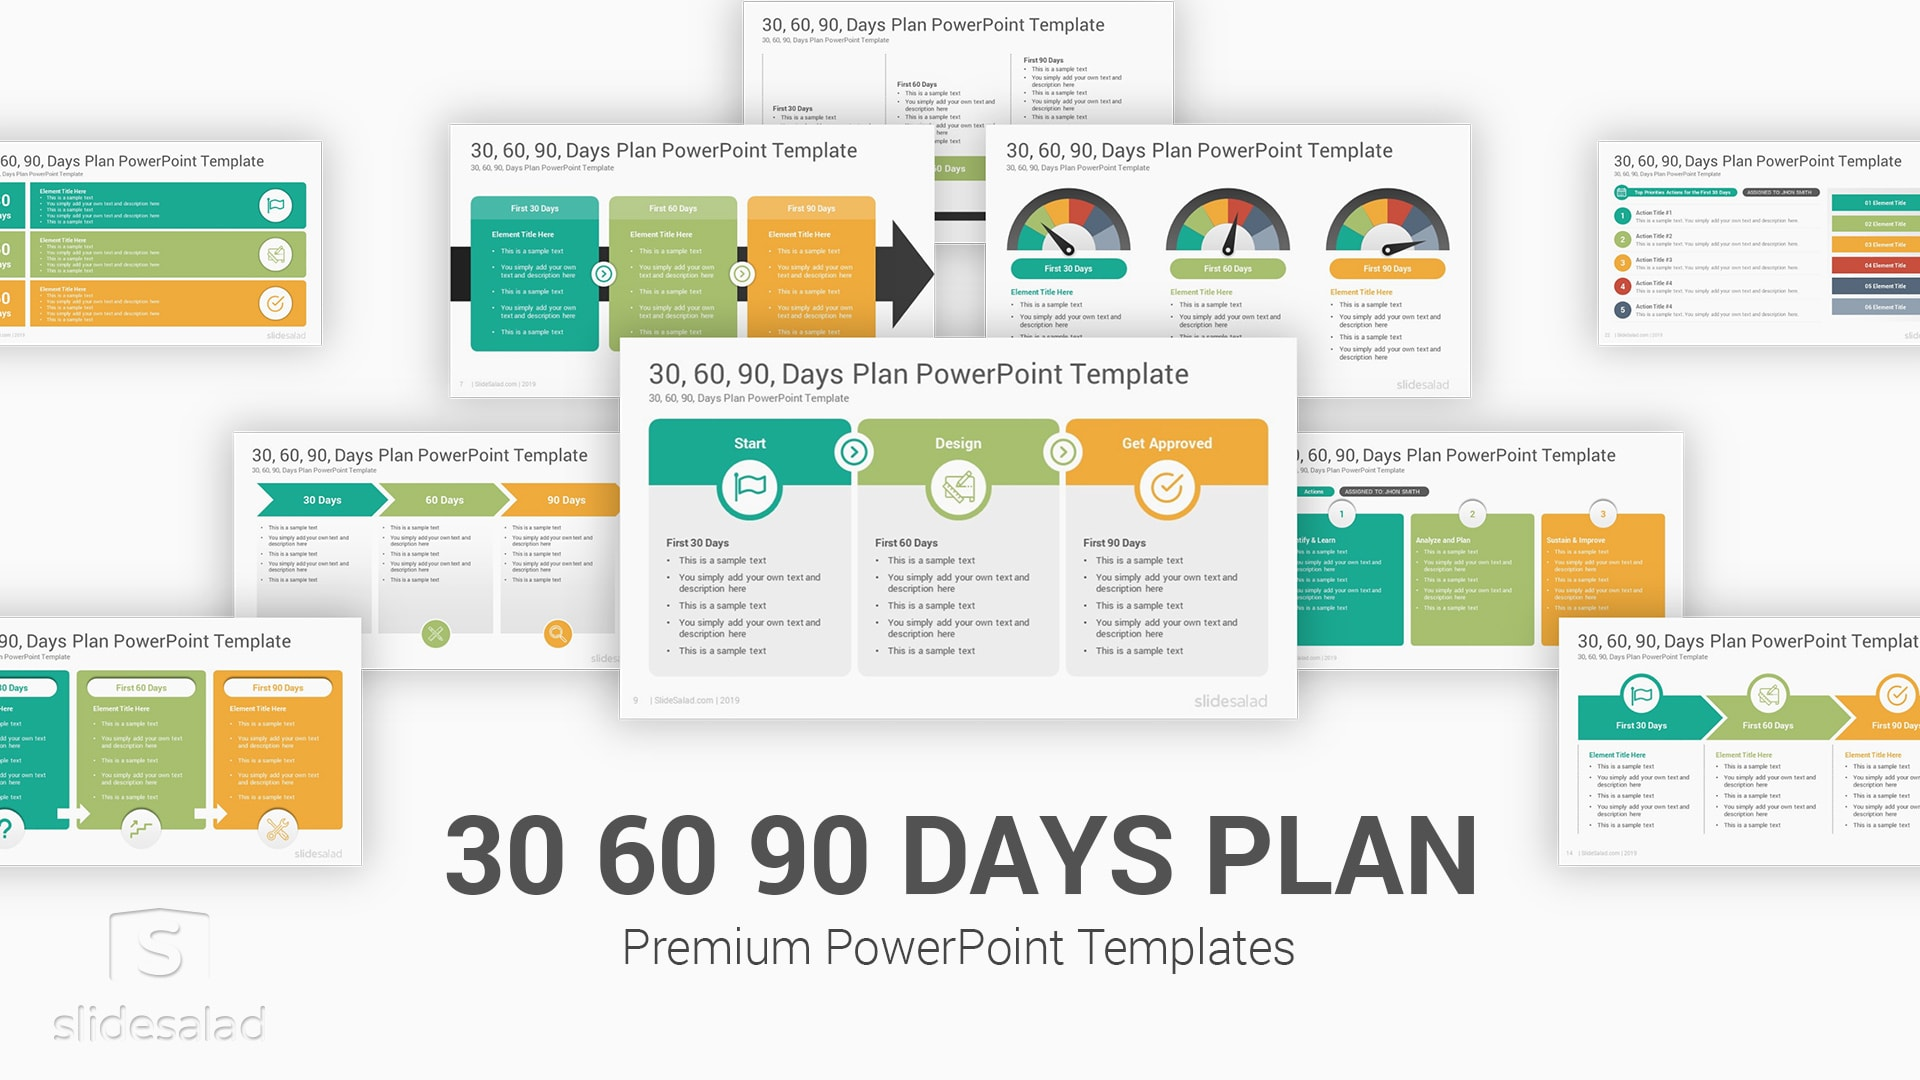 30 60 90 Days Plan PowerPoint Template – PowerPoint Strategy PPT Design Template